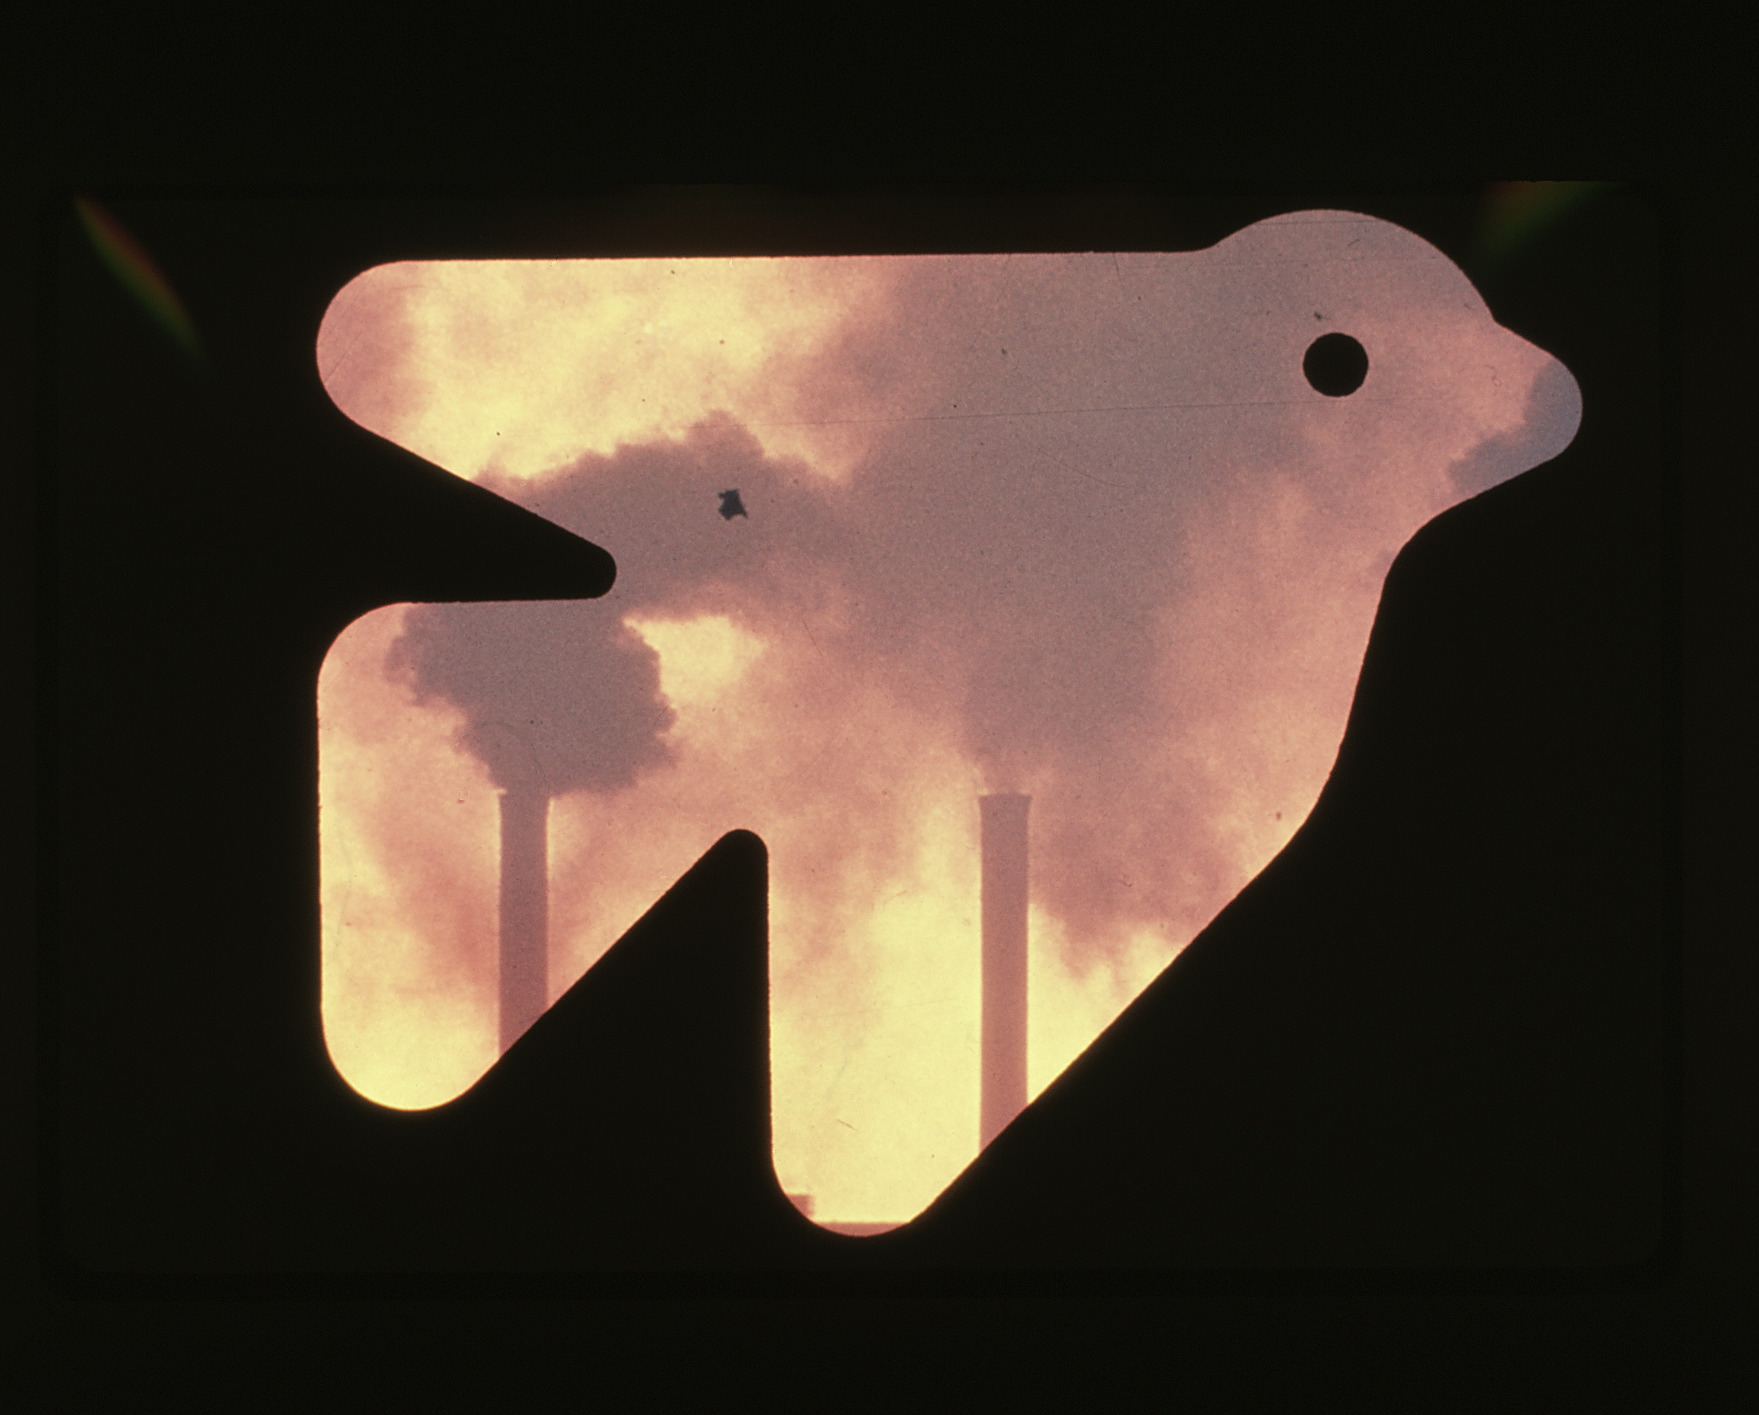 Pictogram of bird, with smoggy sky